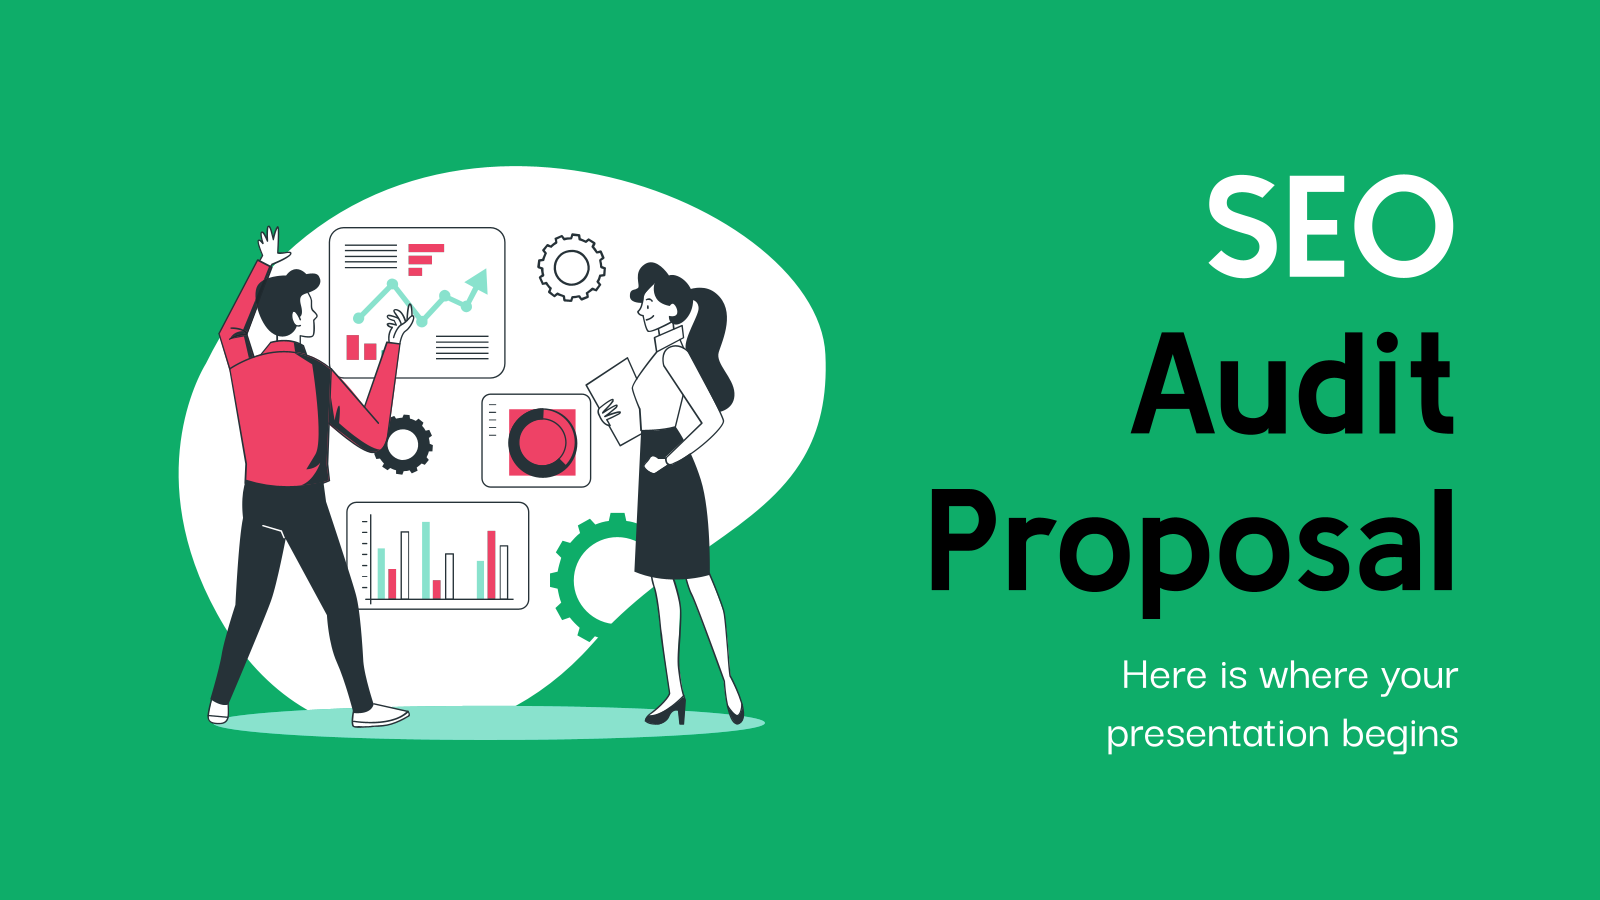 SEO Audit Proposal presentation template